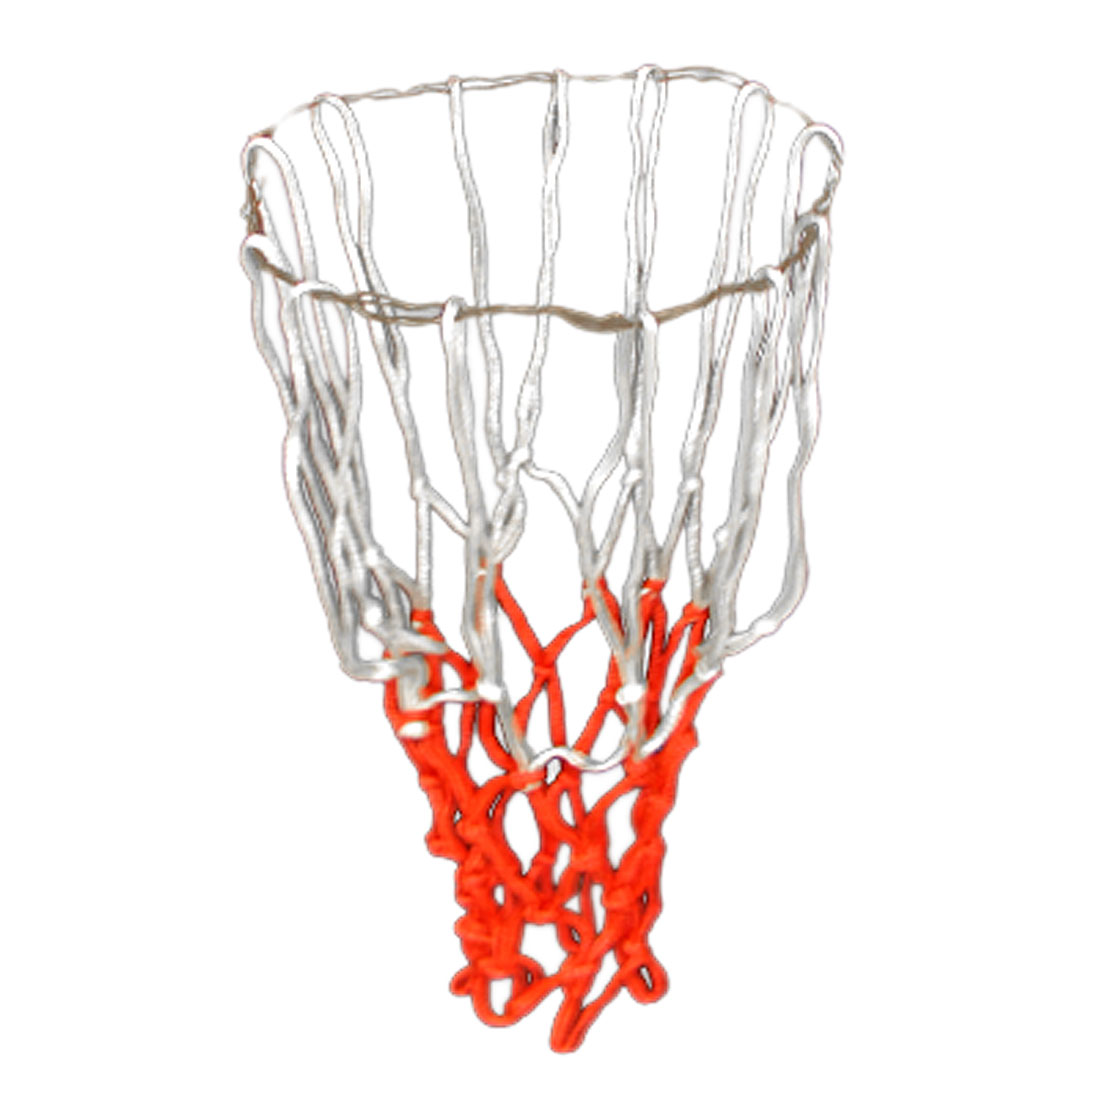 "Unique Bargains 2 Pcs 19"" Long Braided Nylon Training Match Basketball Nets White Red"